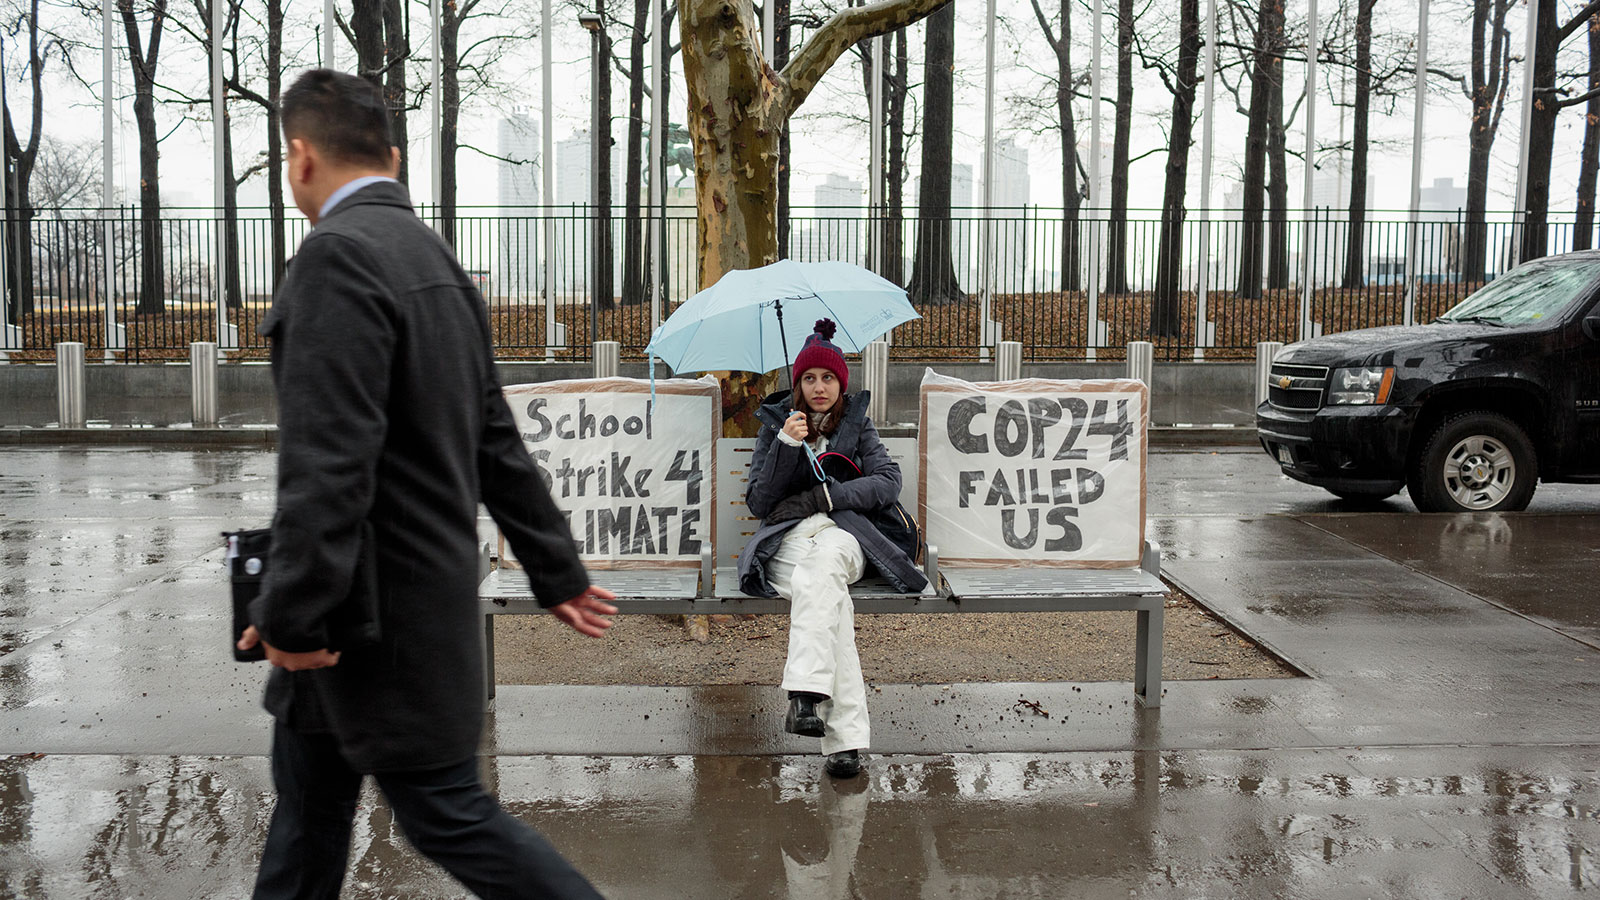 Alexandria Villasenor skips school on Friday morning to strike in front of the UN, with signs reading: